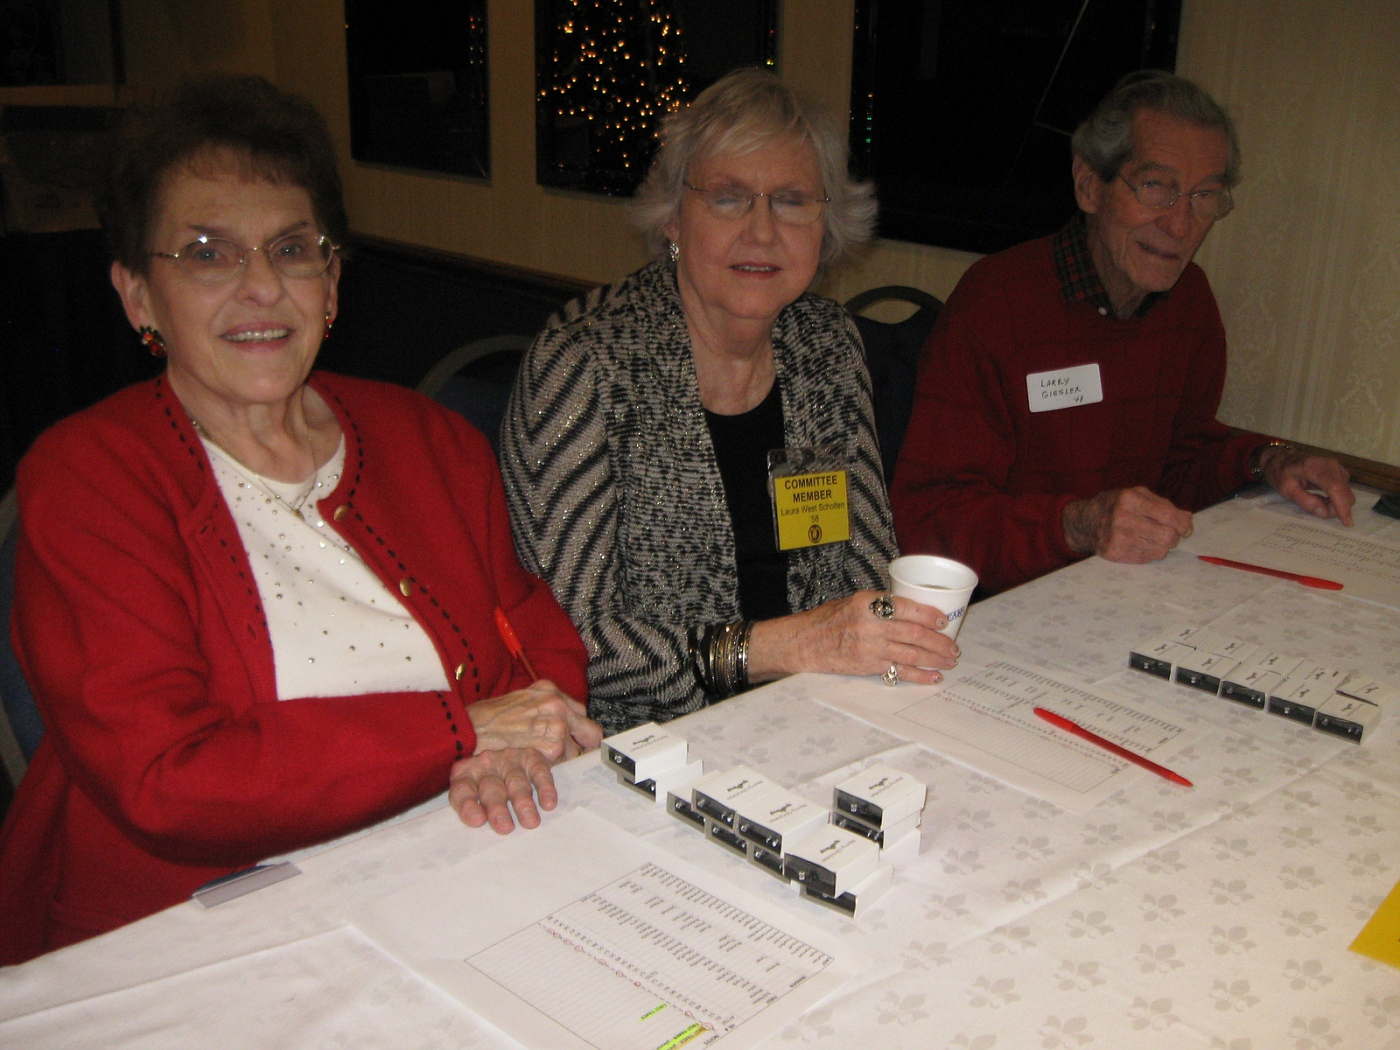 Betty Dial, Laura Scholten, Larry Giesler